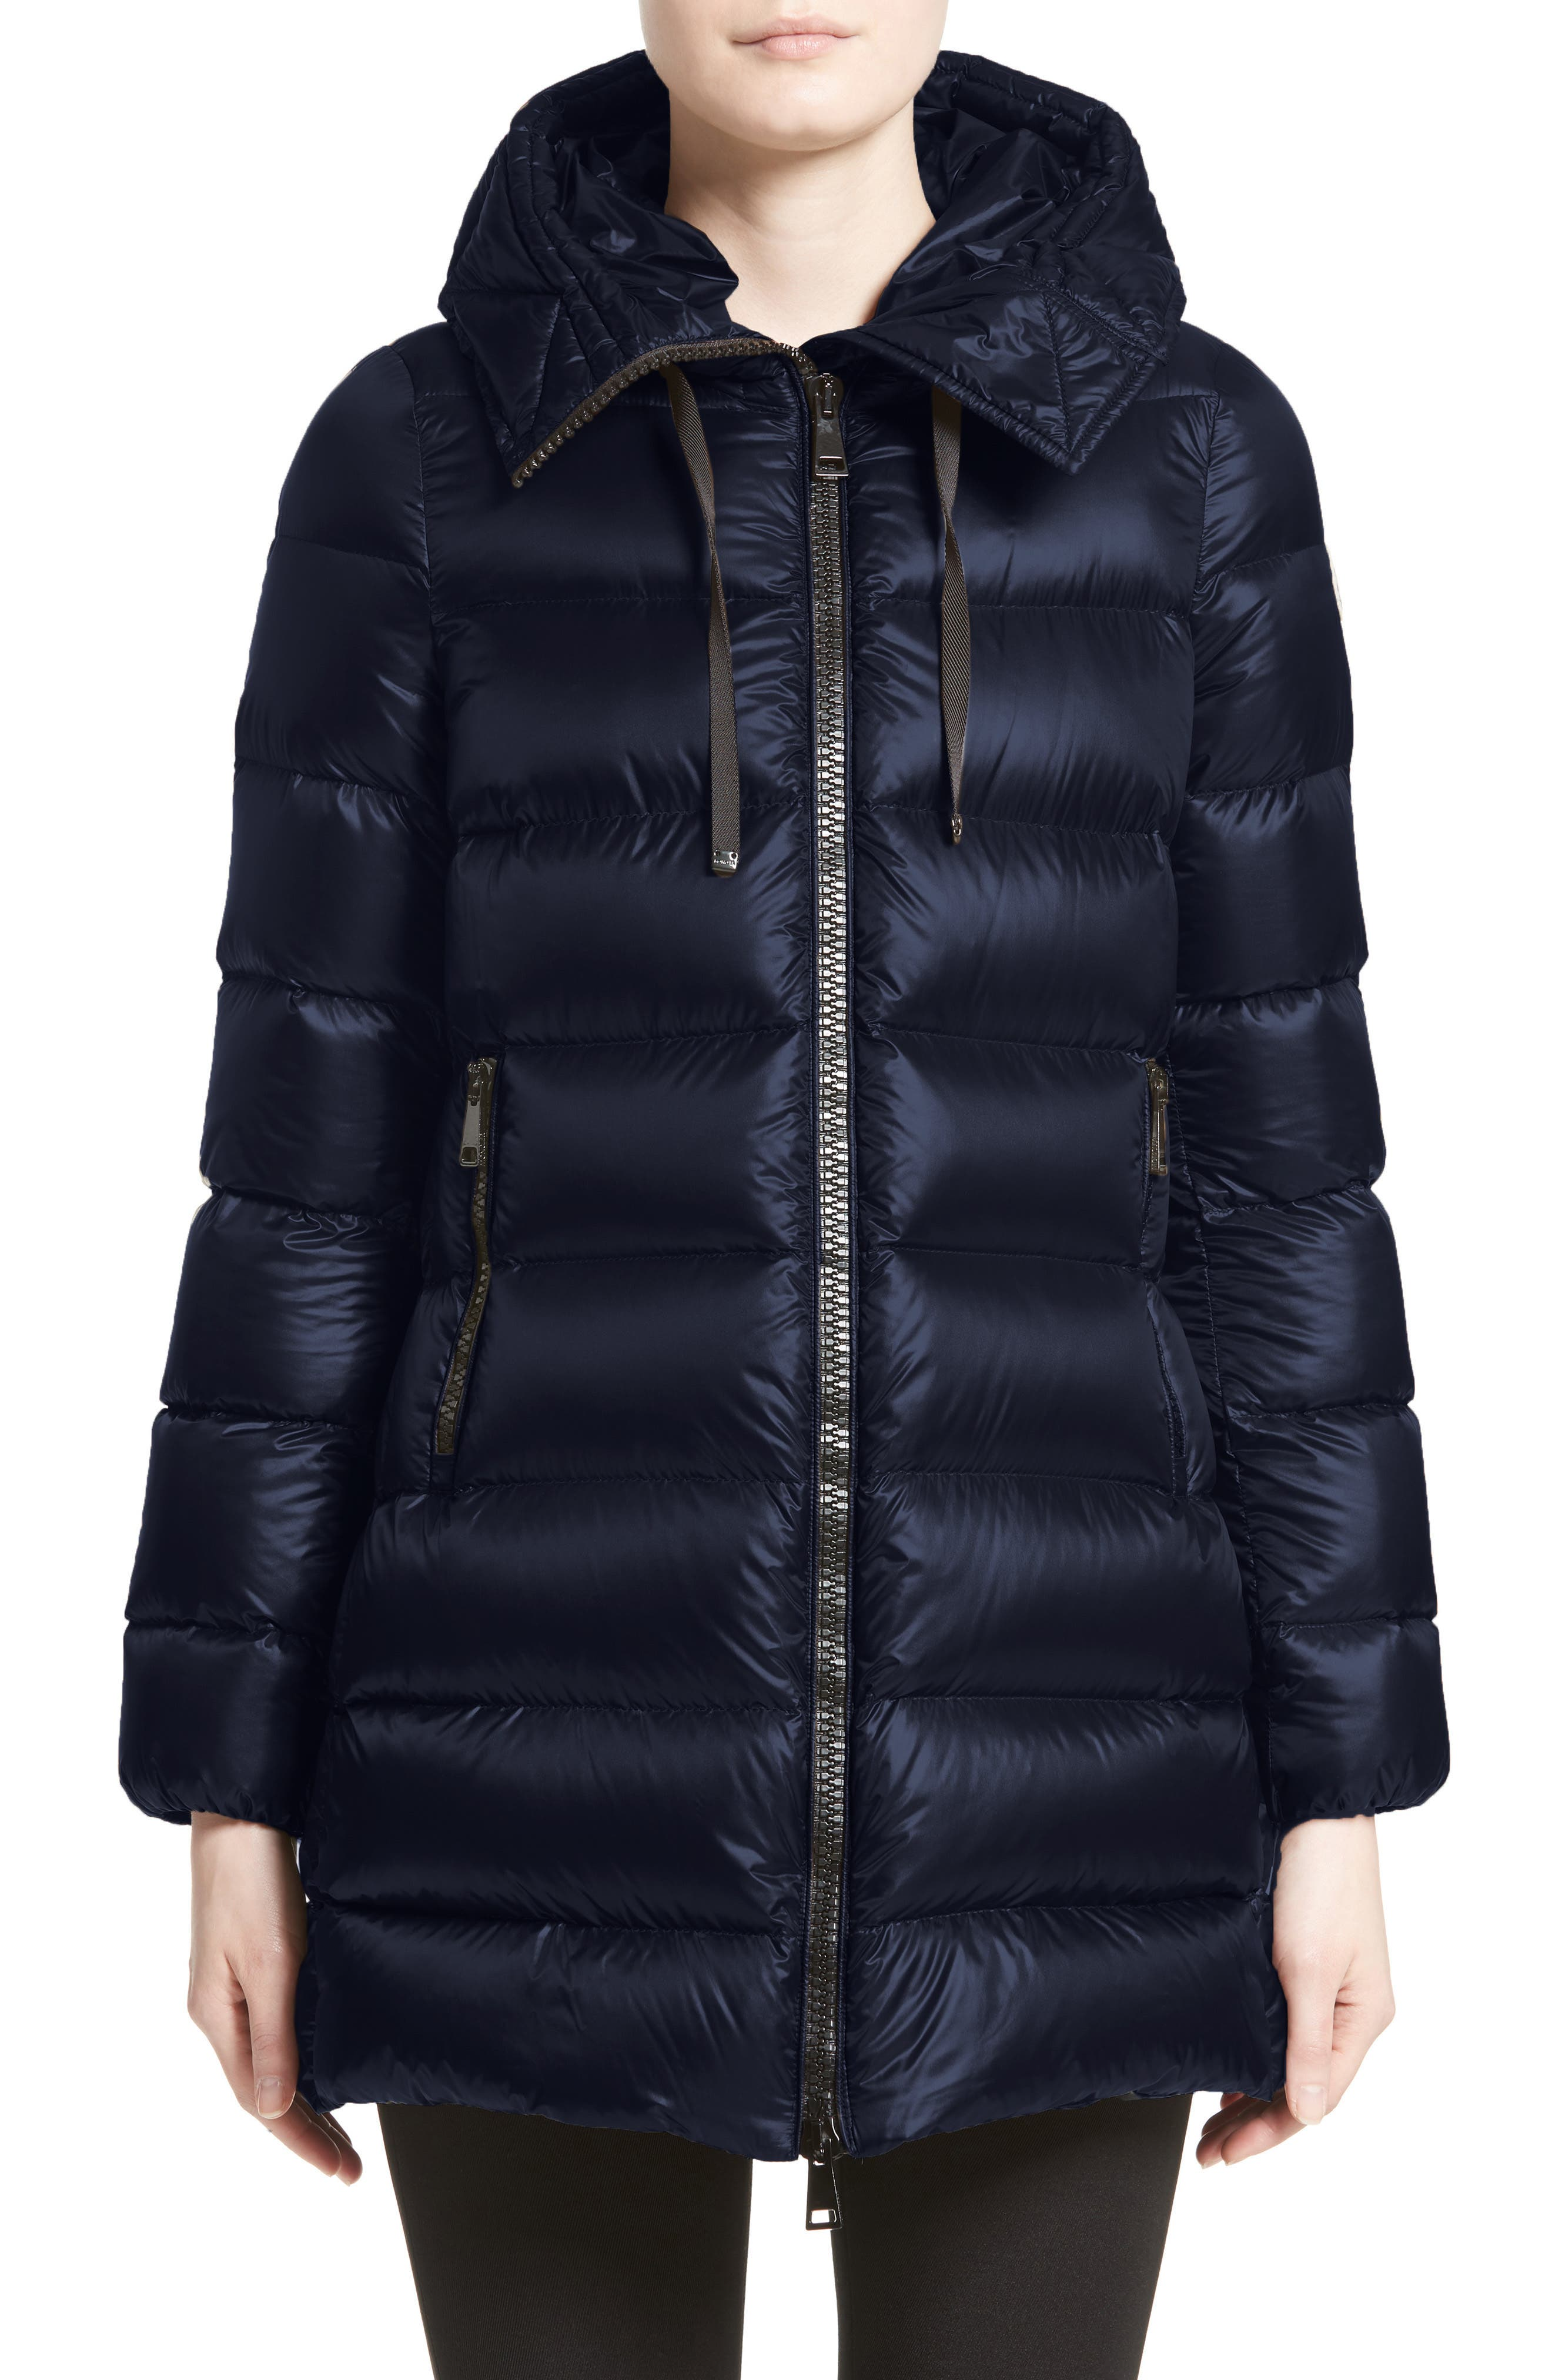 Alternate Image 1 Selected - Moncler 'Suyen' Water Resistant Hooded Down Puffer Coat